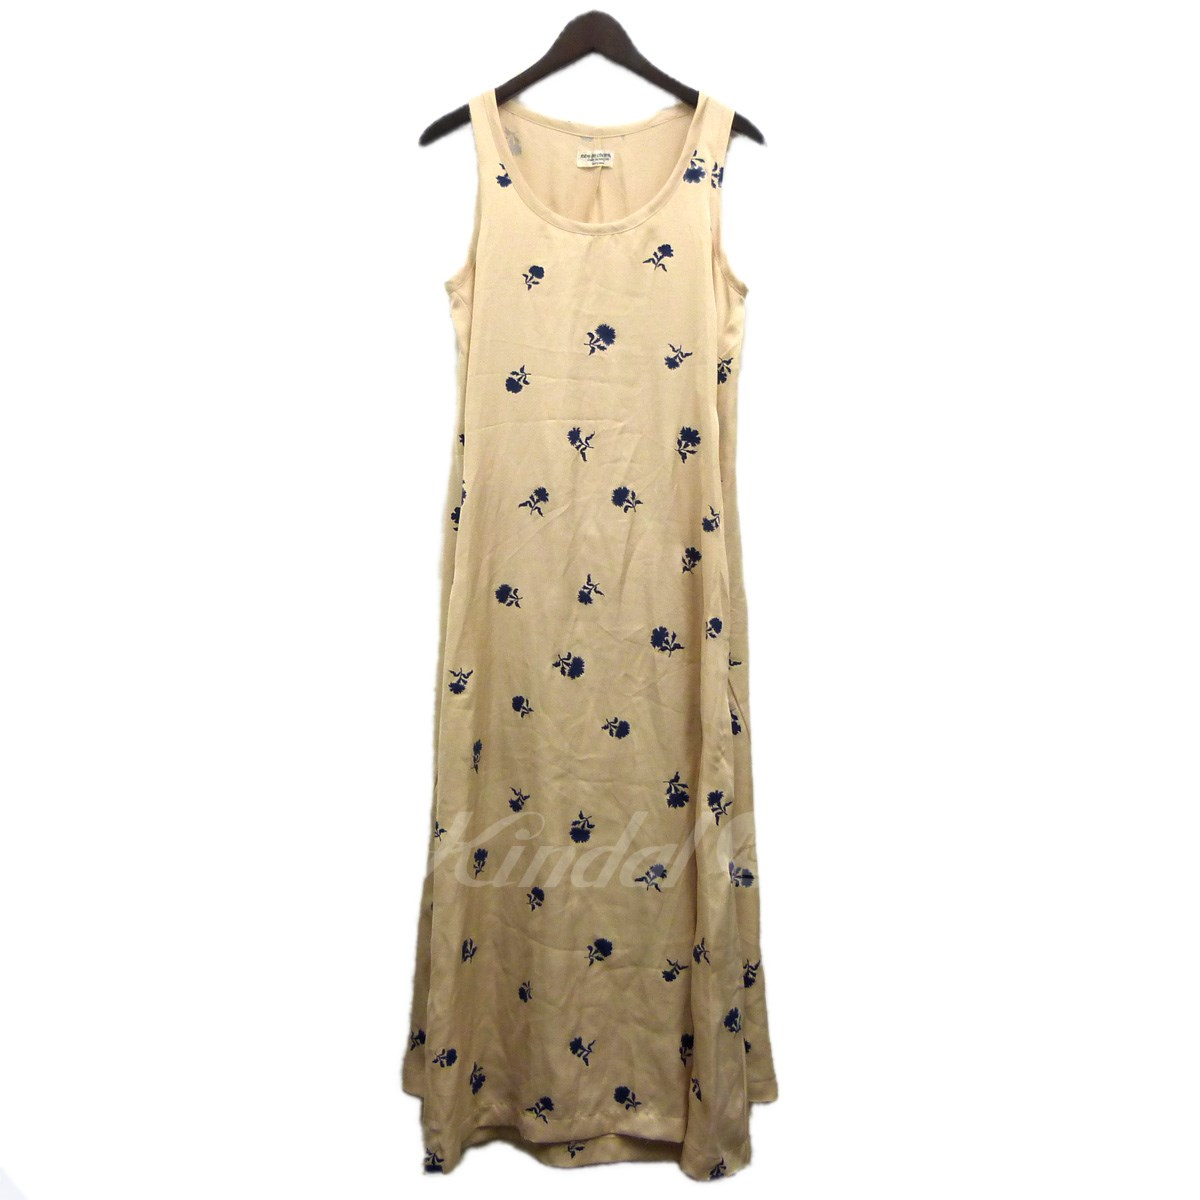 Chambre Gender Robe De Chambre Comme Des Garcons Floral Design Design No Sleeve Dress Ivory Size ローブドシャンブルコムデギャルソン